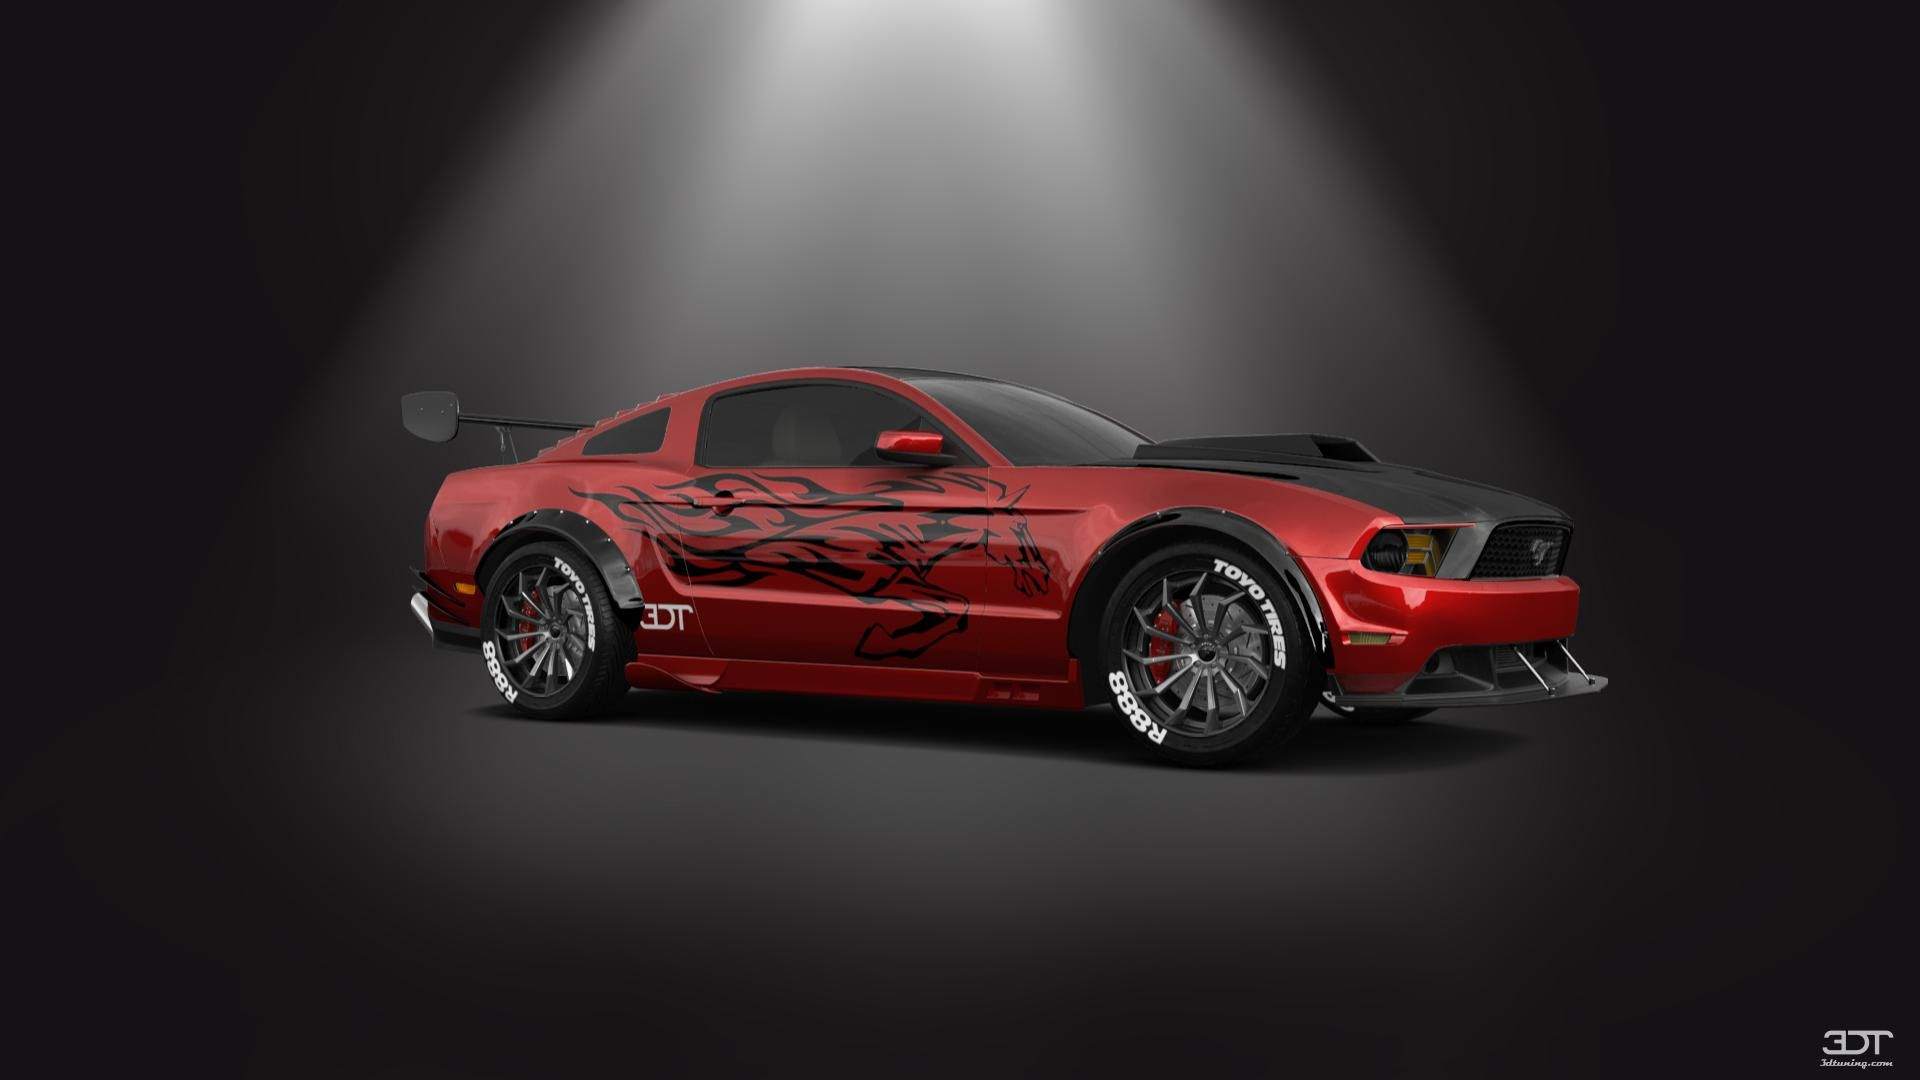 Checkout My Tuning Ford Mustang 2012 At 3dtuning 3dtuning Tuning Mustang Ford Mustang Ford